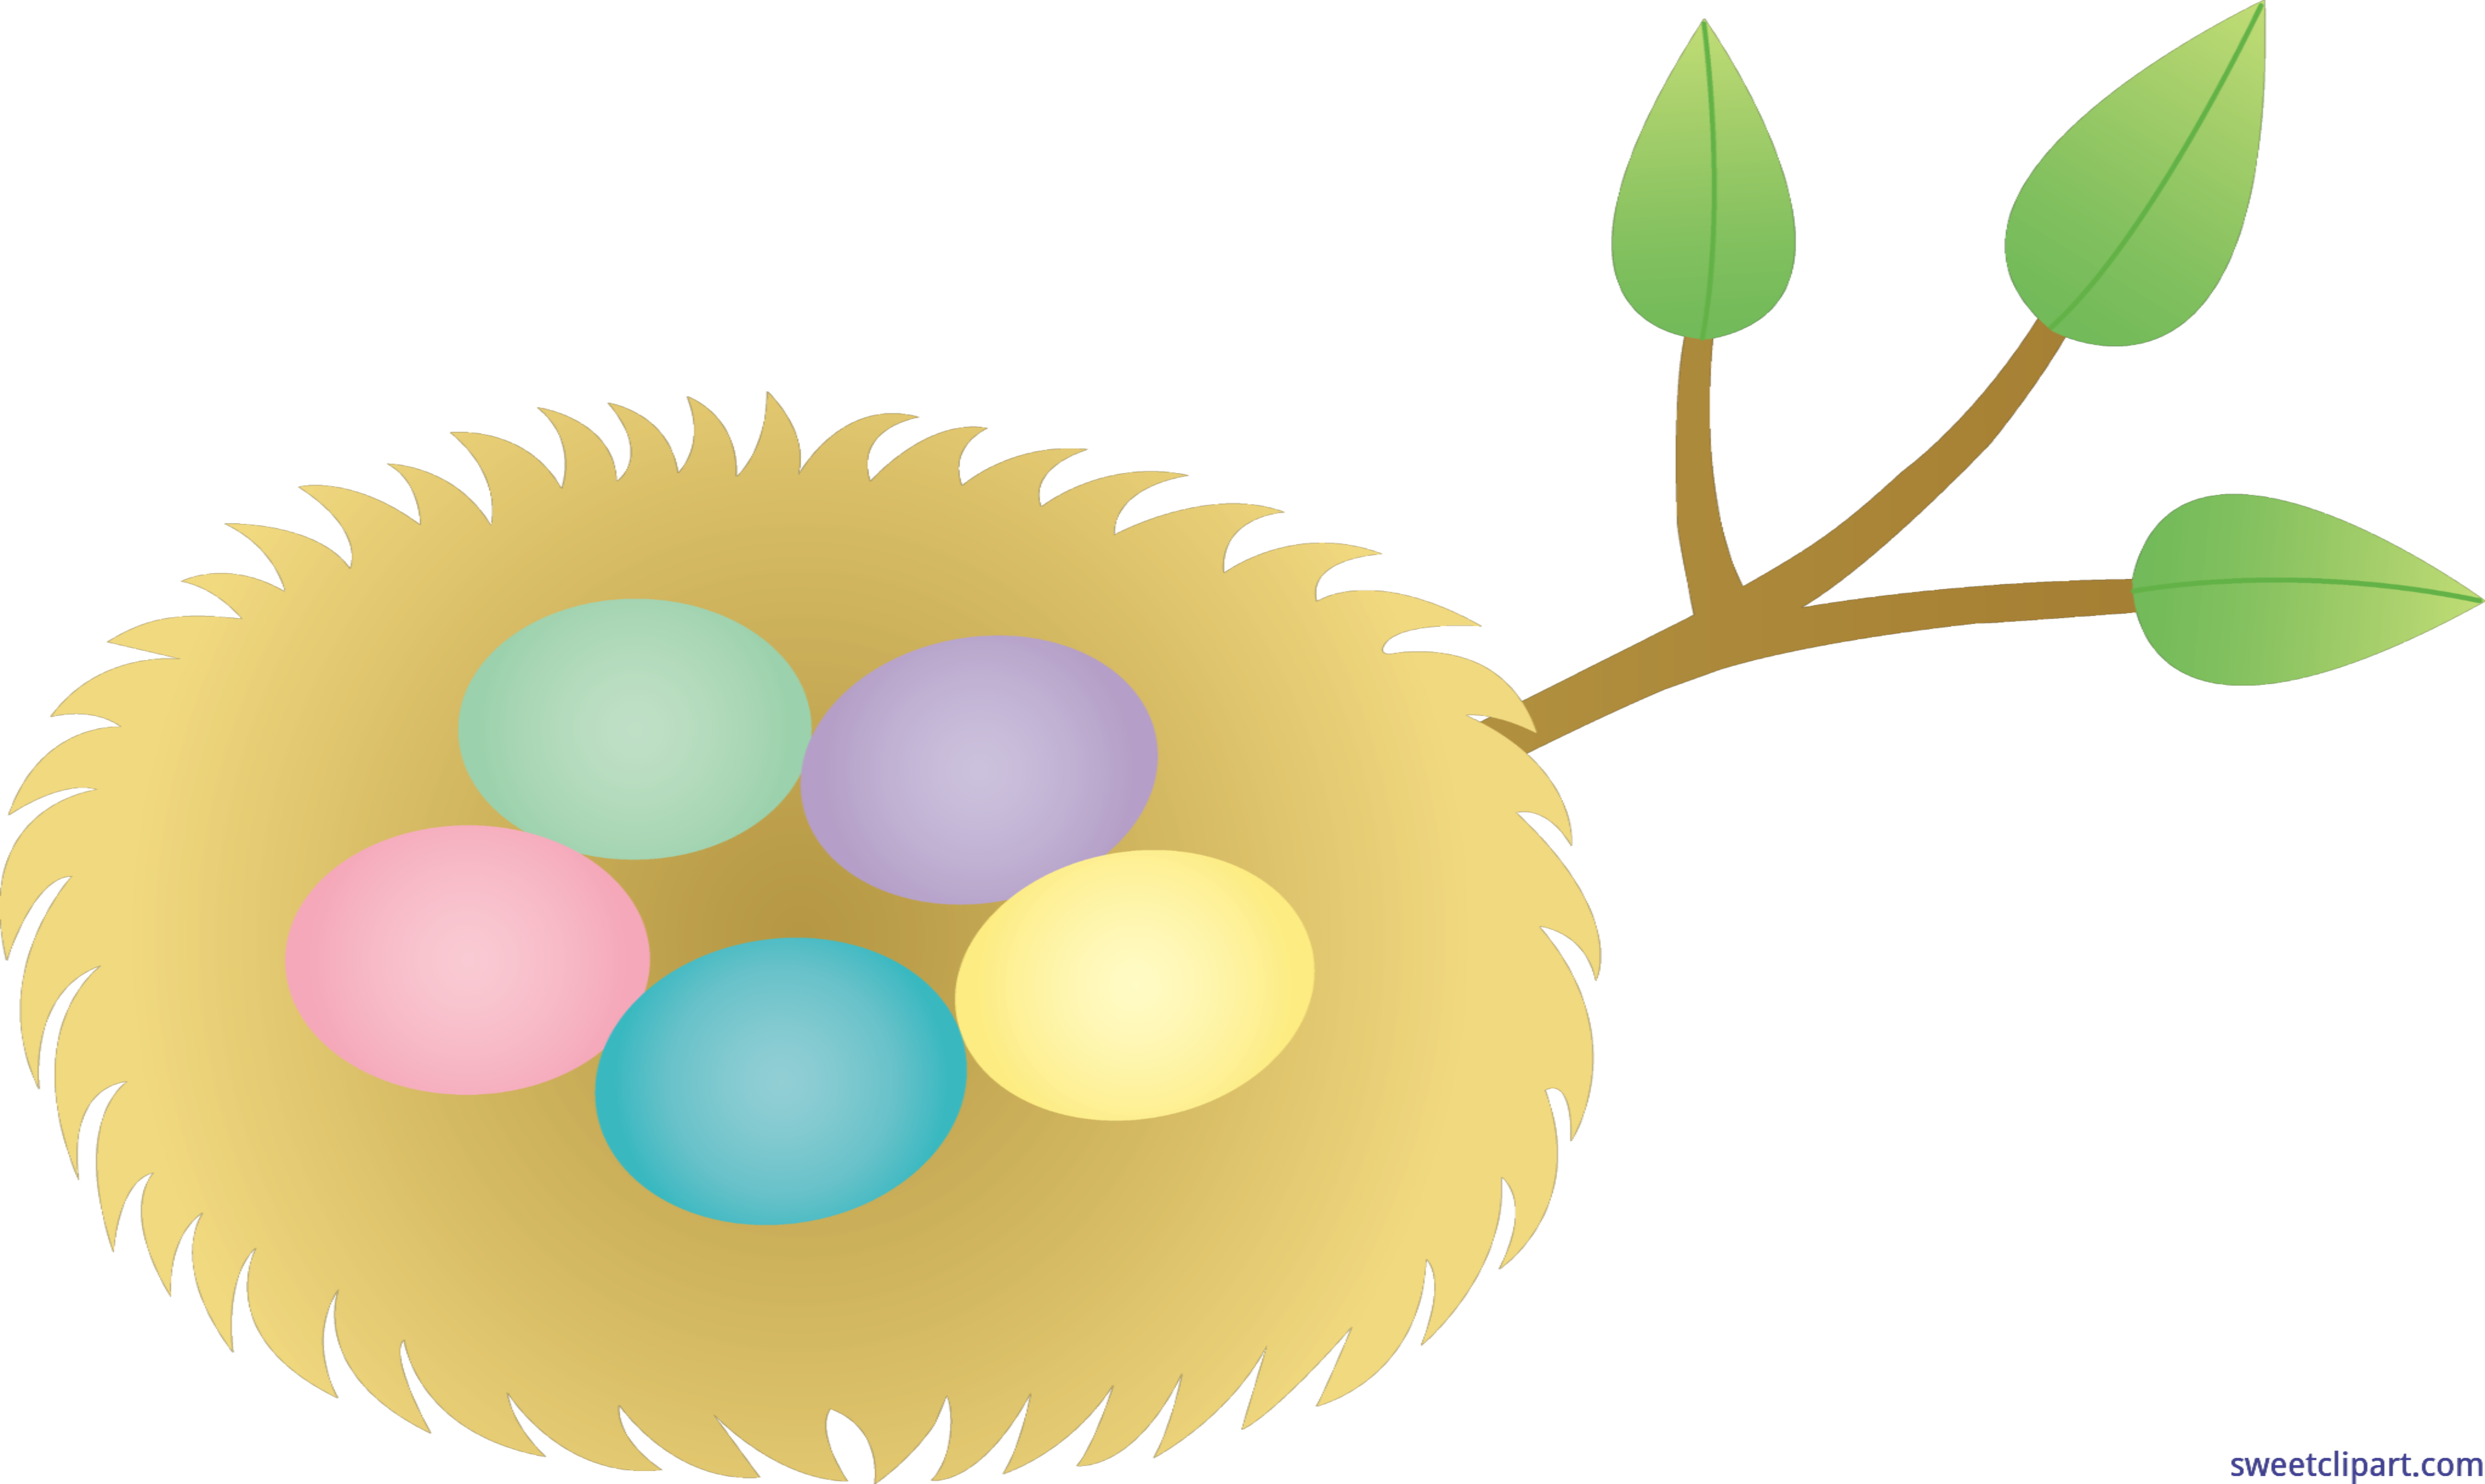 clipart freeuse download Nest clipart bird food. Easter eggs clip art.